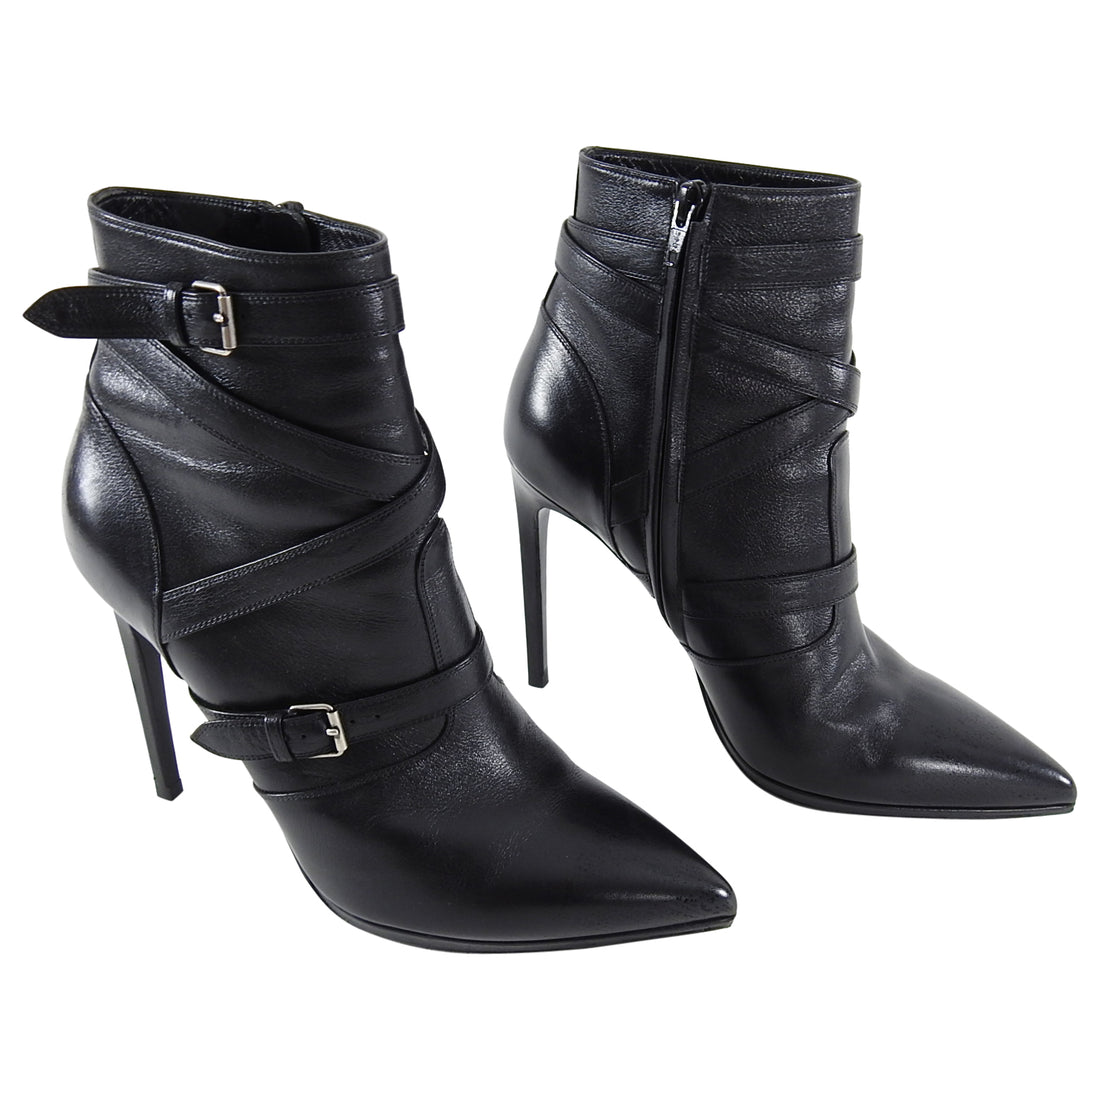 Saint Laurent Black Pointy Ankle Boots with Buckles - 40